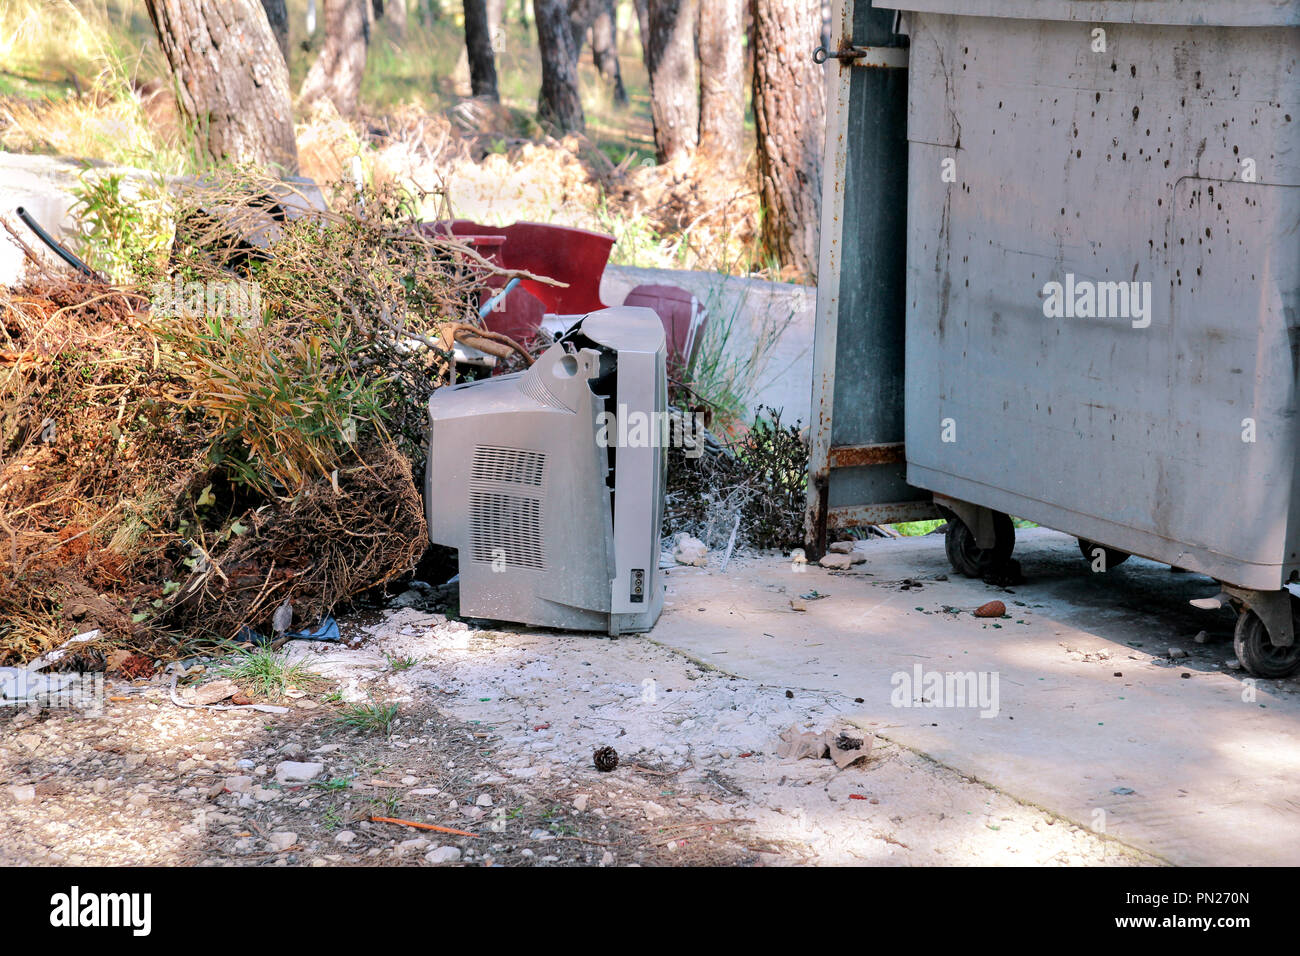 Discard old TV sets on a street, television near the garbage container thrown, natural environment. A TV thrown out with the garbage. Throwing out. - Stock Image